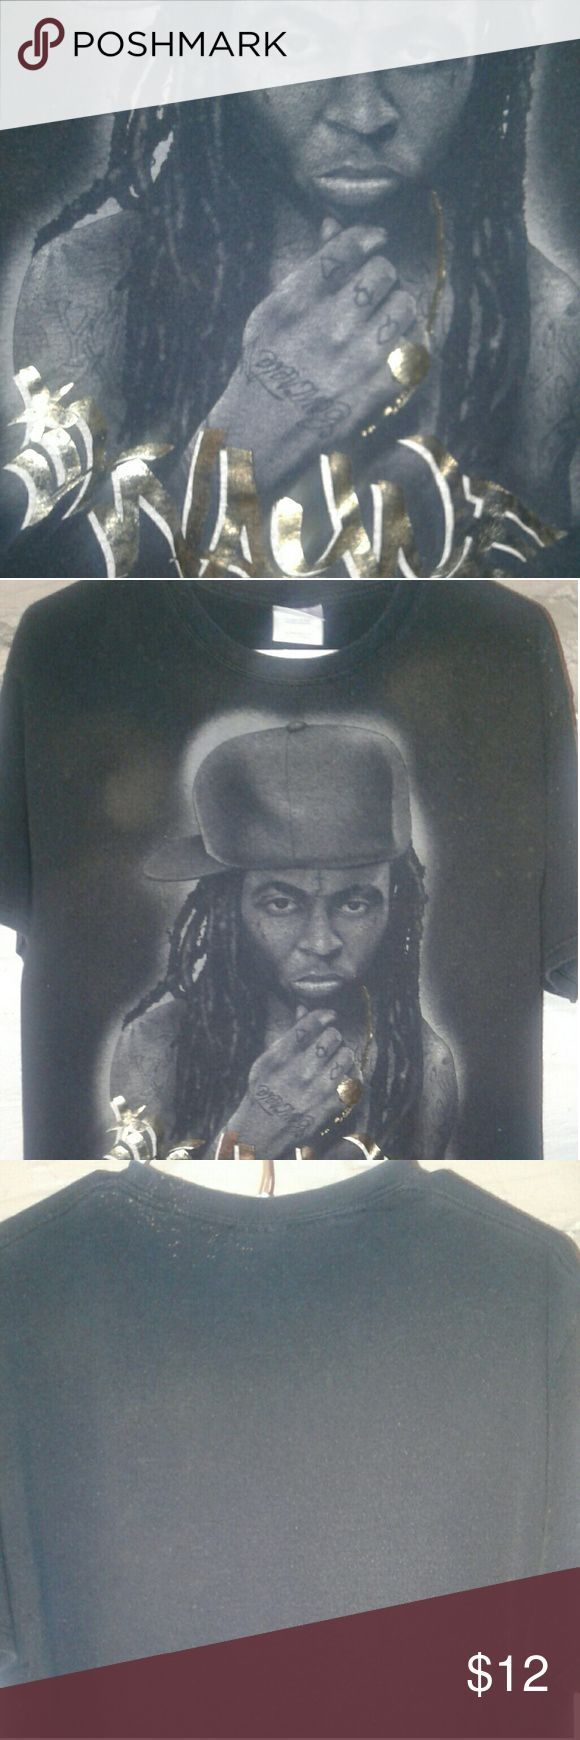 Lil Wayne Graphic T,custom bleached distress Lil Wayne Graphic T shirt,custom,bleach distressed look,size large Adults,I will not find a T shirt like this anywhere else,gold and black, no joles,no rips,no burns,Pet free,smoke free,size large in adults Hanes Shirts Tees - Short Sleeve